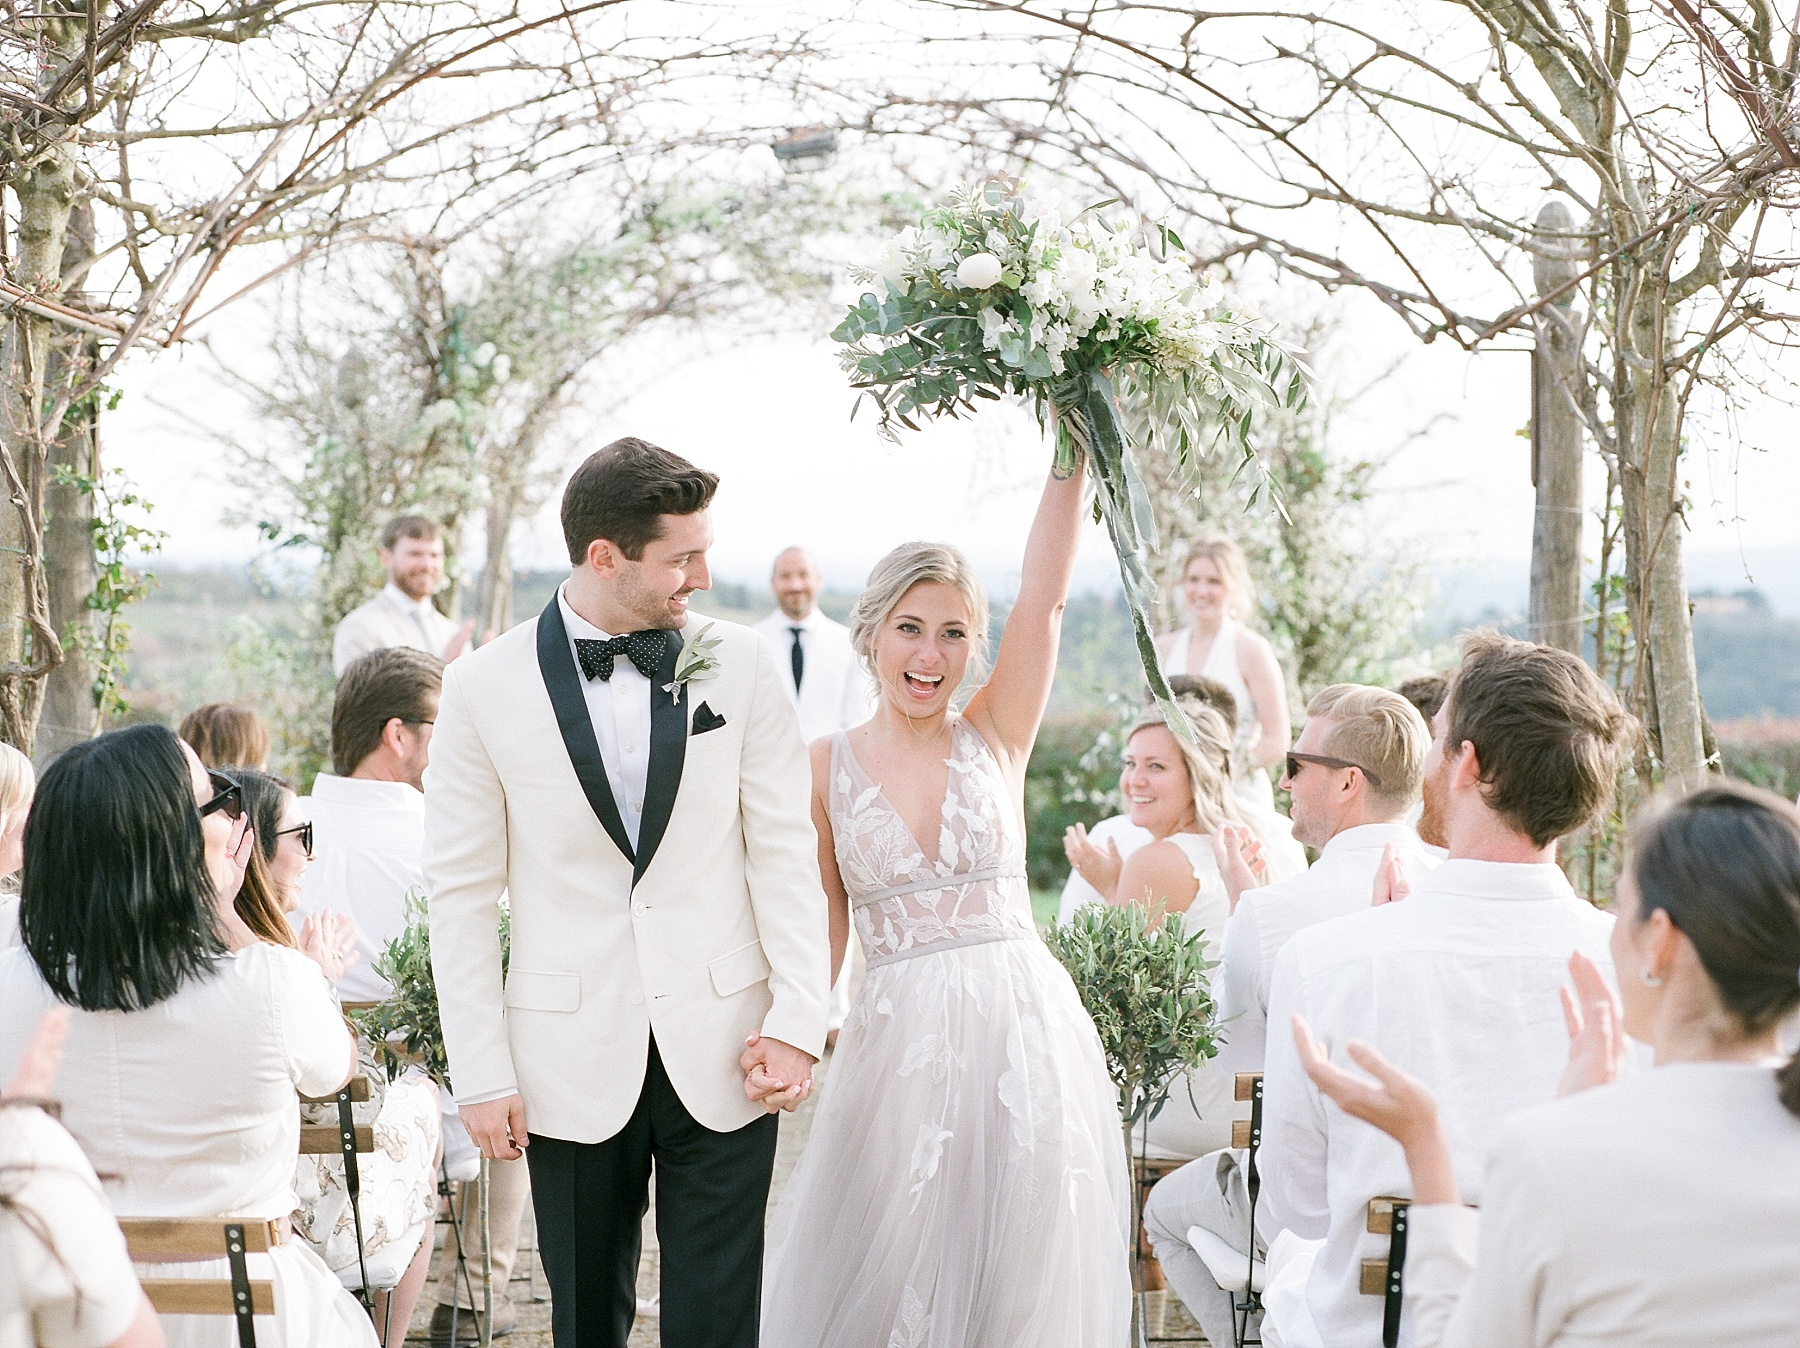 All White Destination Wedding in the Hills of Tuscany Italy at Estate Borgo Petrognano by Kelsi Kliethermes Photography_0019.jpg